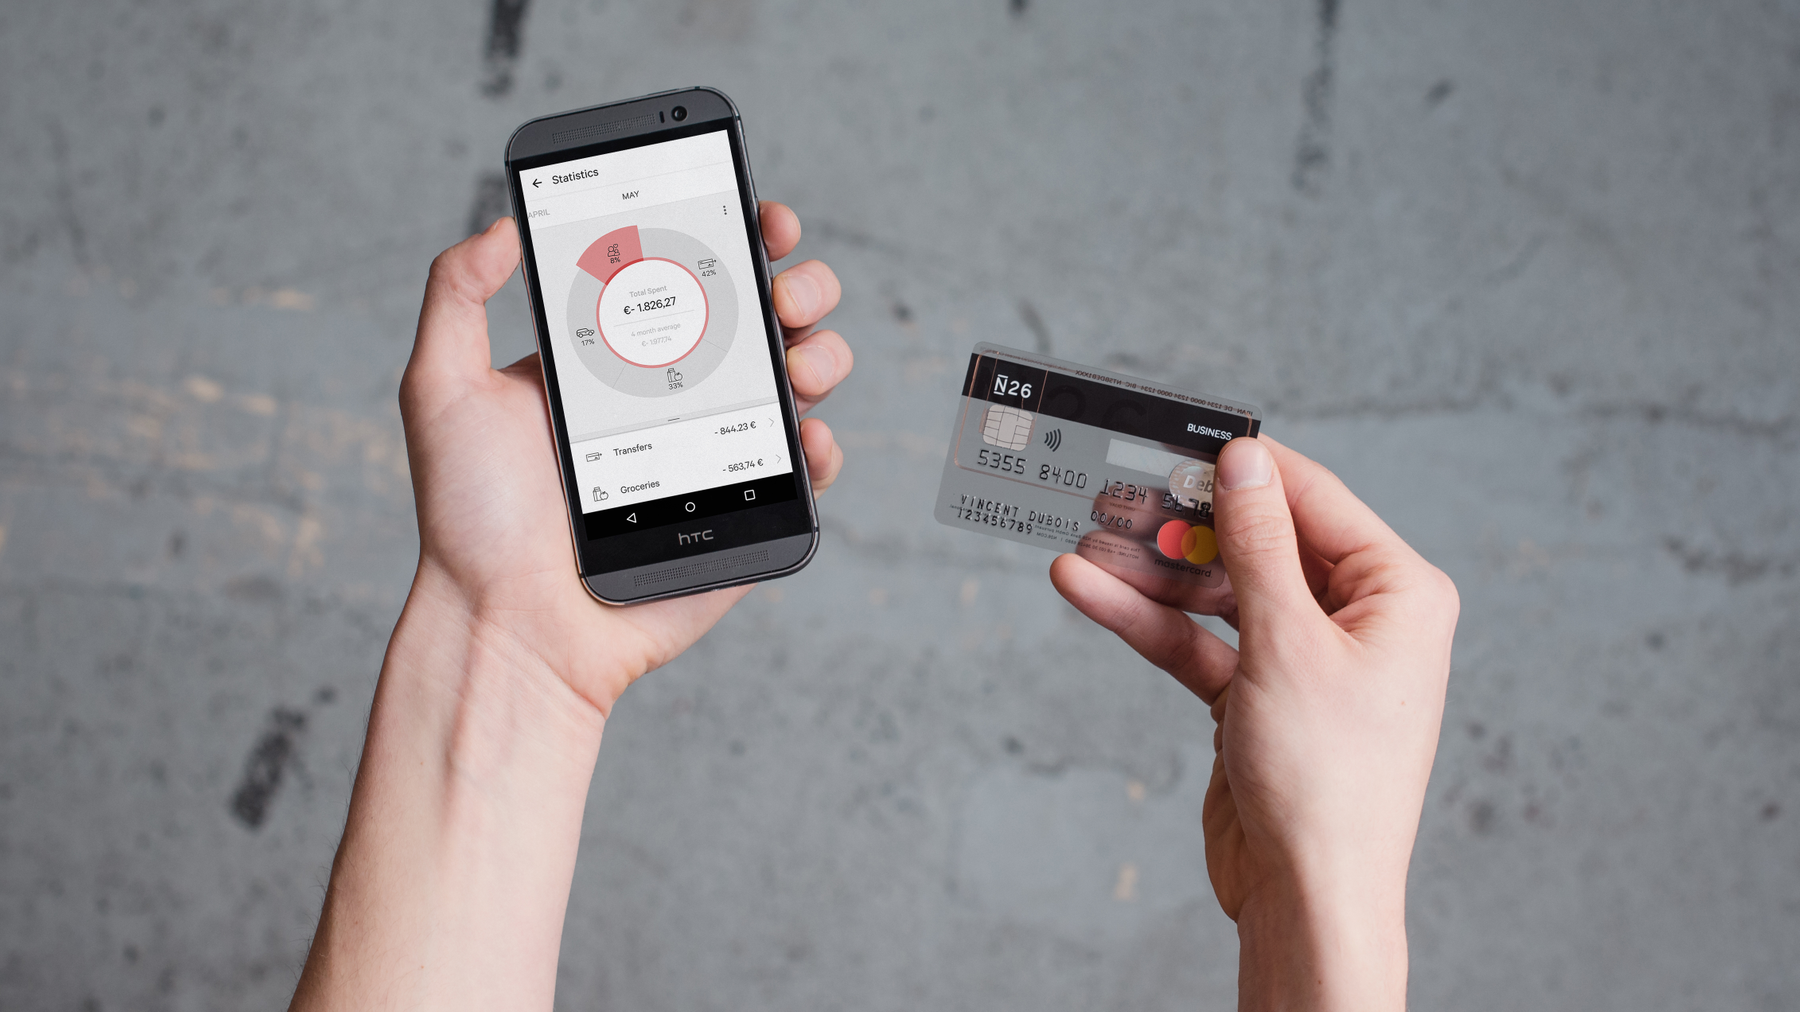 d39d418689c Mobile bank N26 launches in Denmark